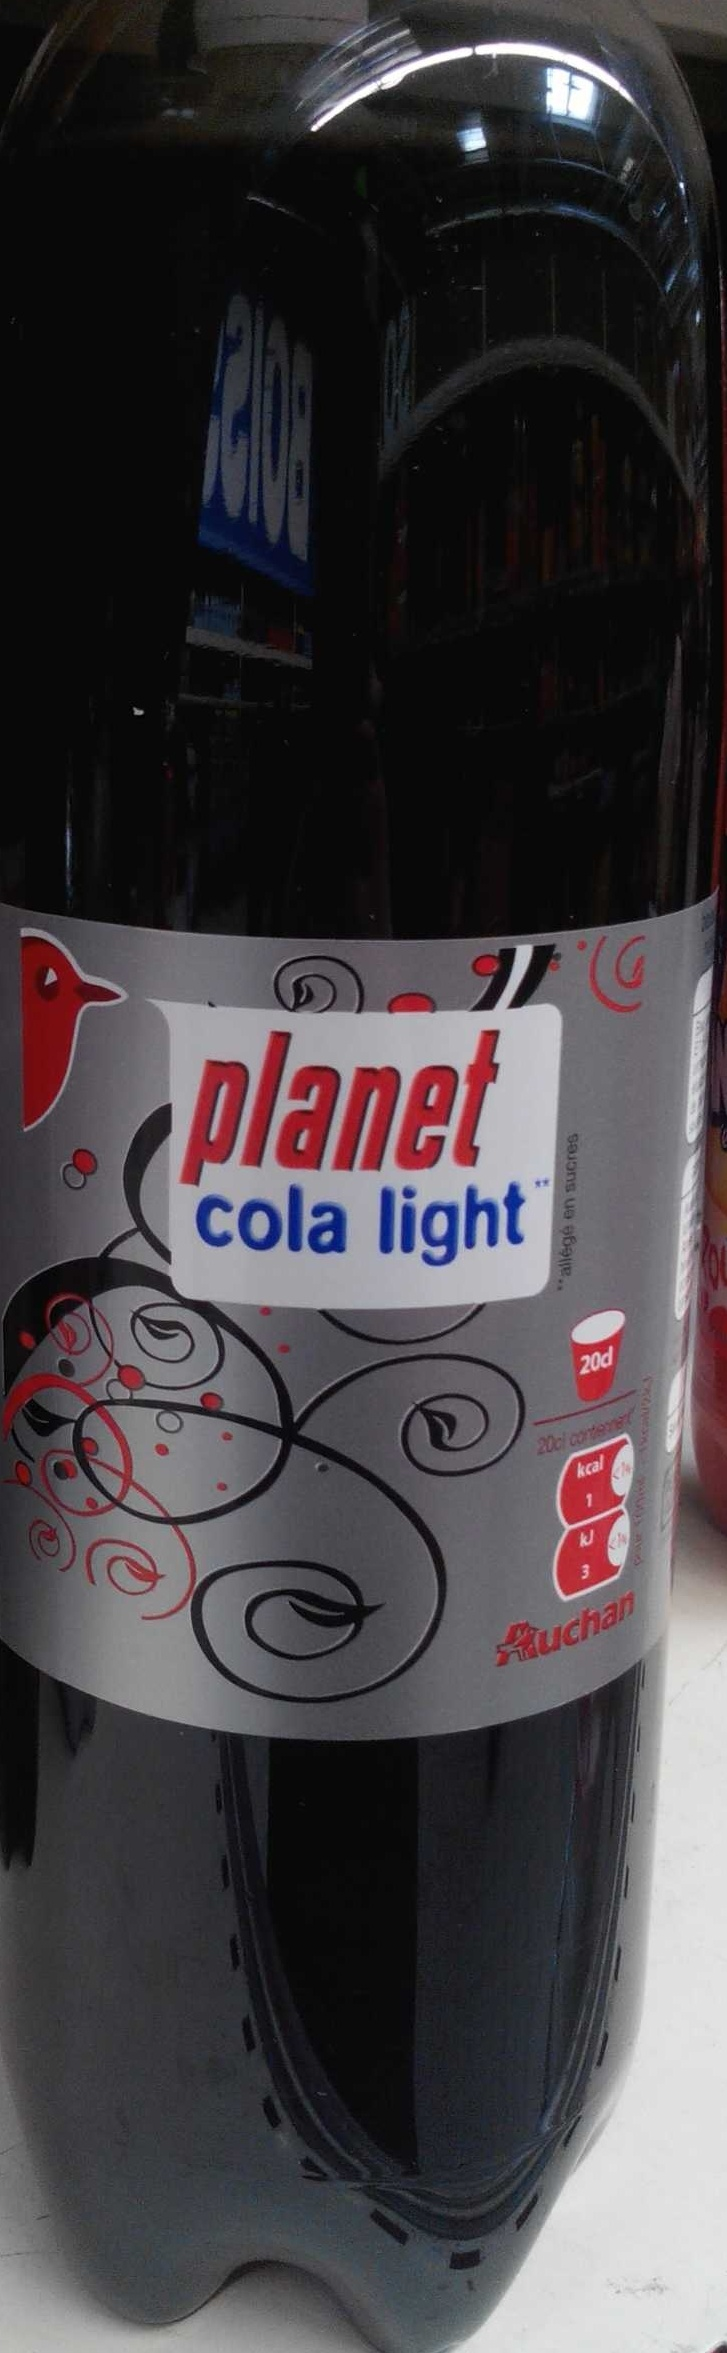 Planet cola light - Product - fr